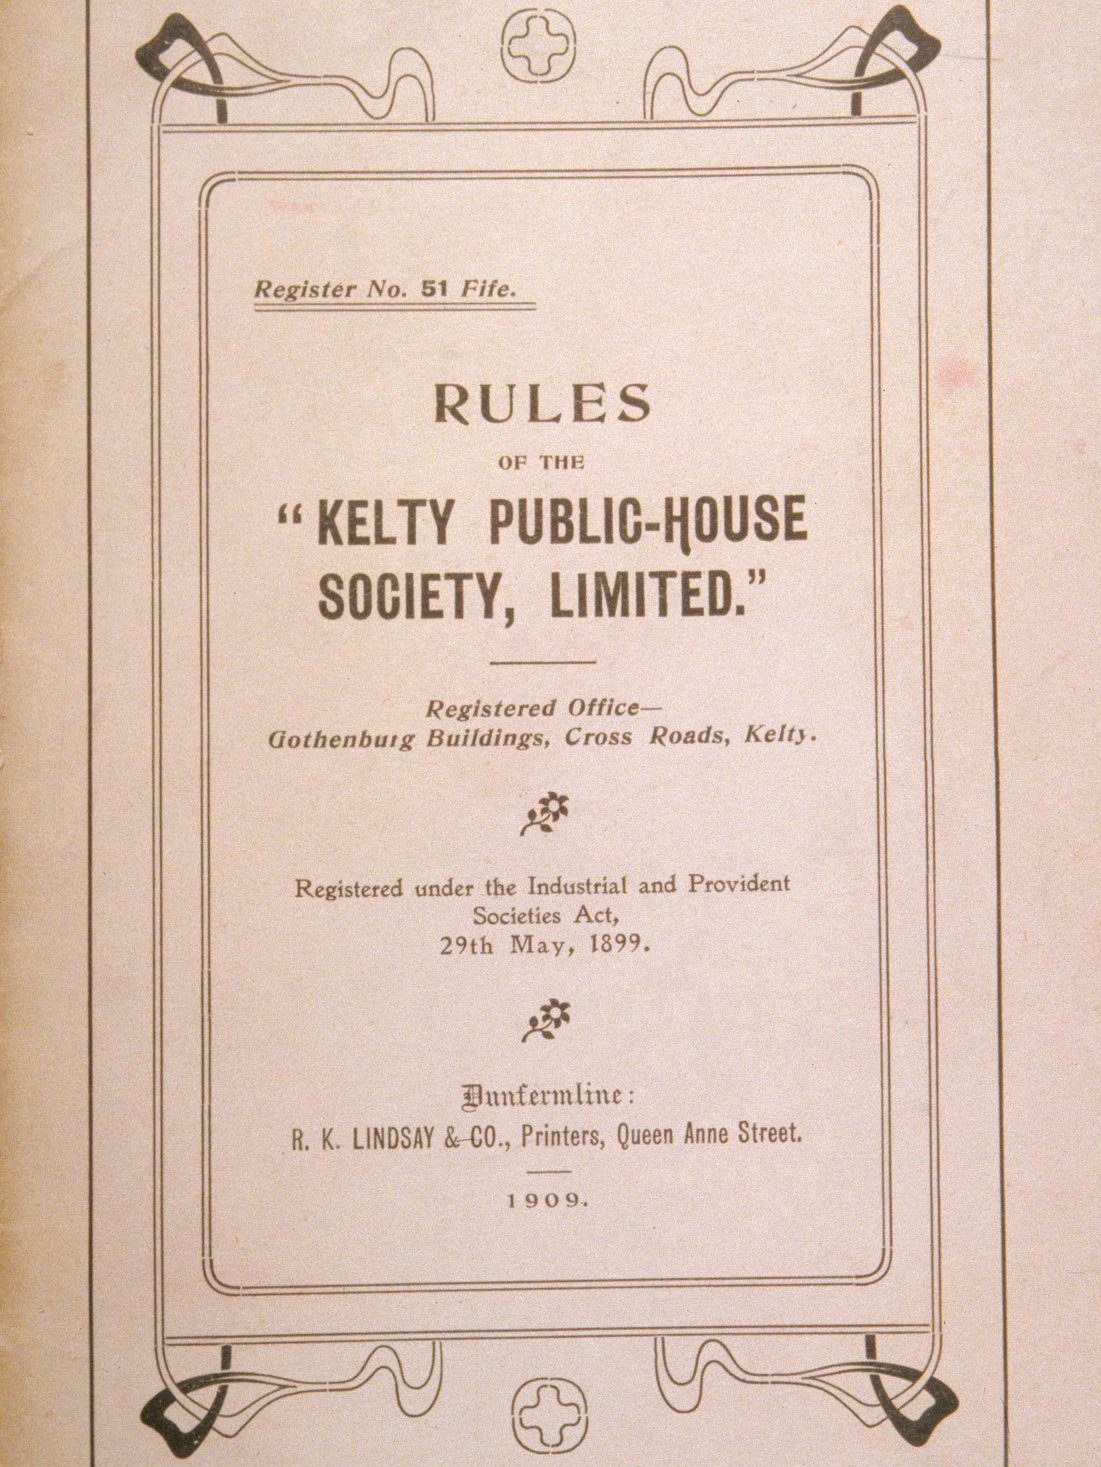 Front page of the 1909 printed rules of the Kelty Public House Society which opened one of Fife's many 'Goths'